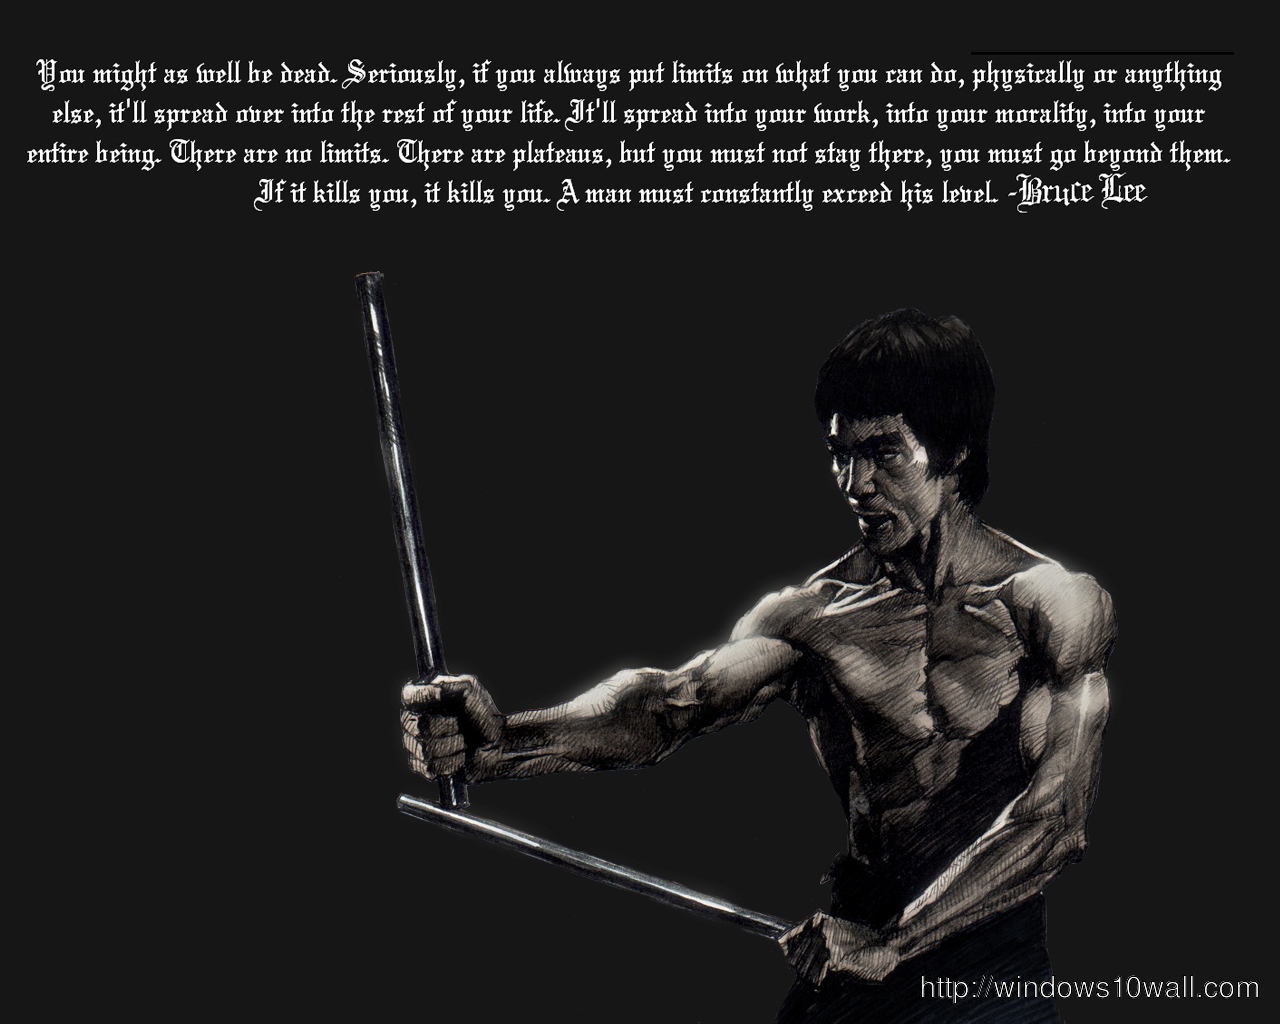 Inspirational Sports Quotes Wallpaper For Iphone Unique Bruce Lee Quotes New Hd Wallpaper Windows 10